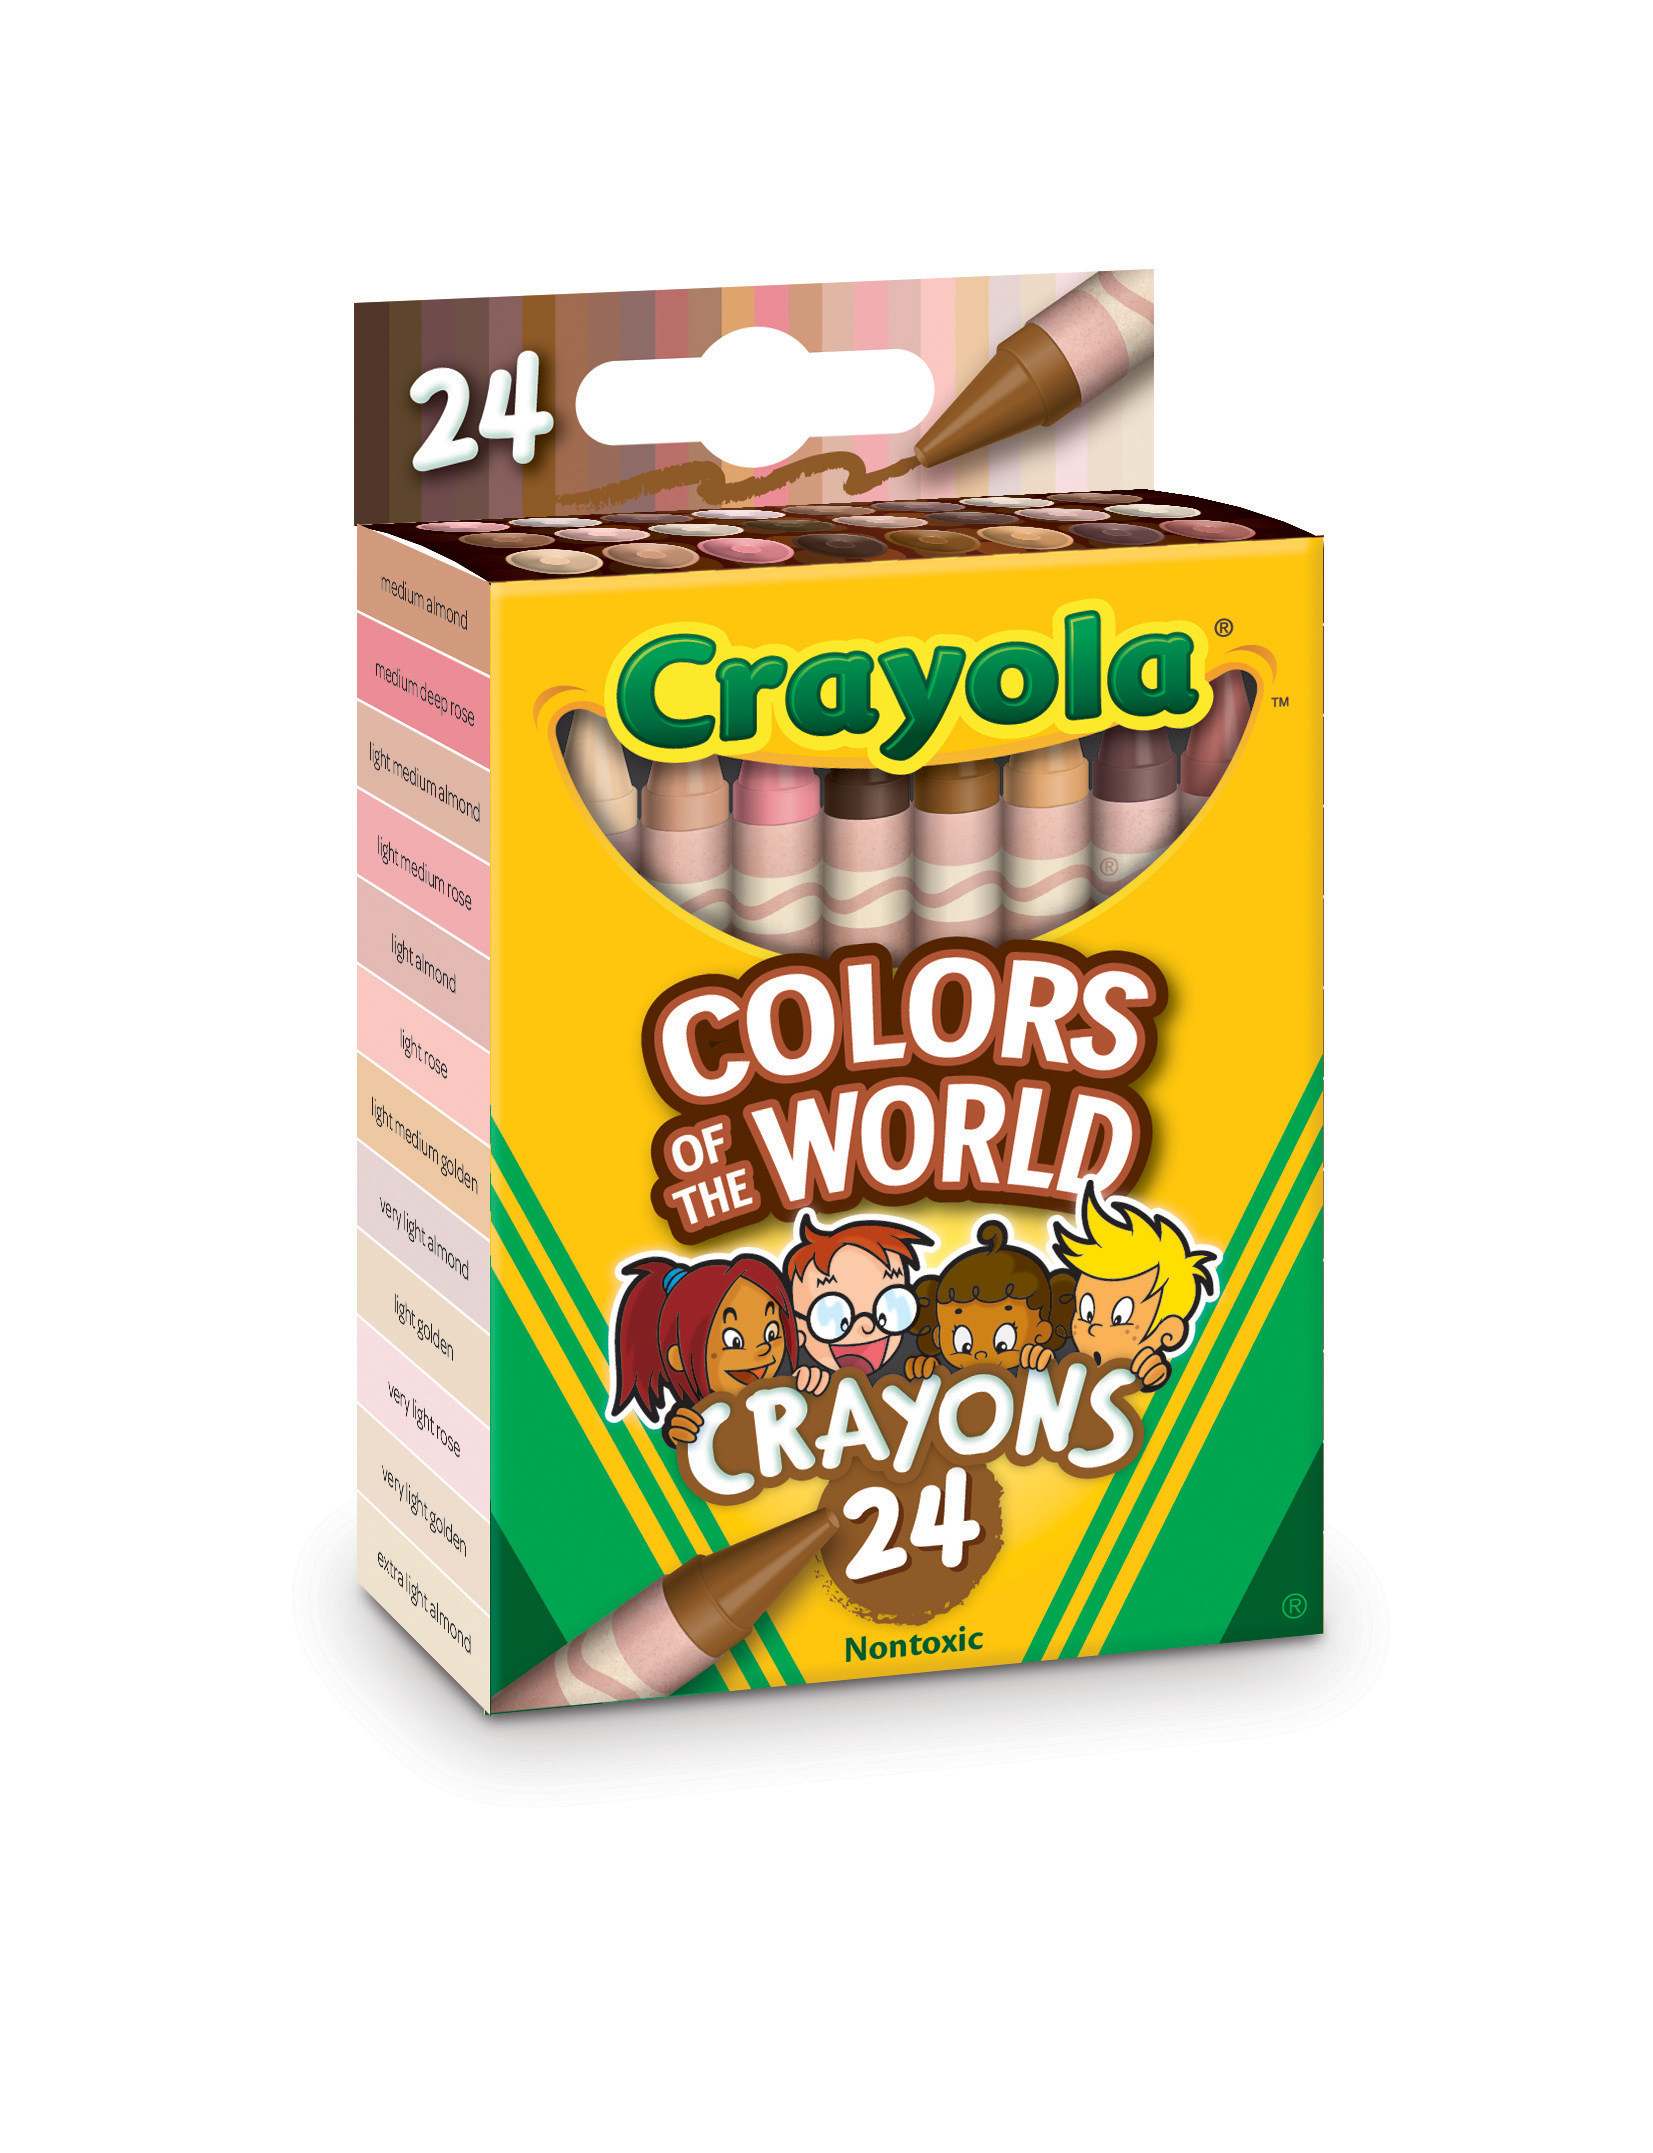 Crayola Announces New